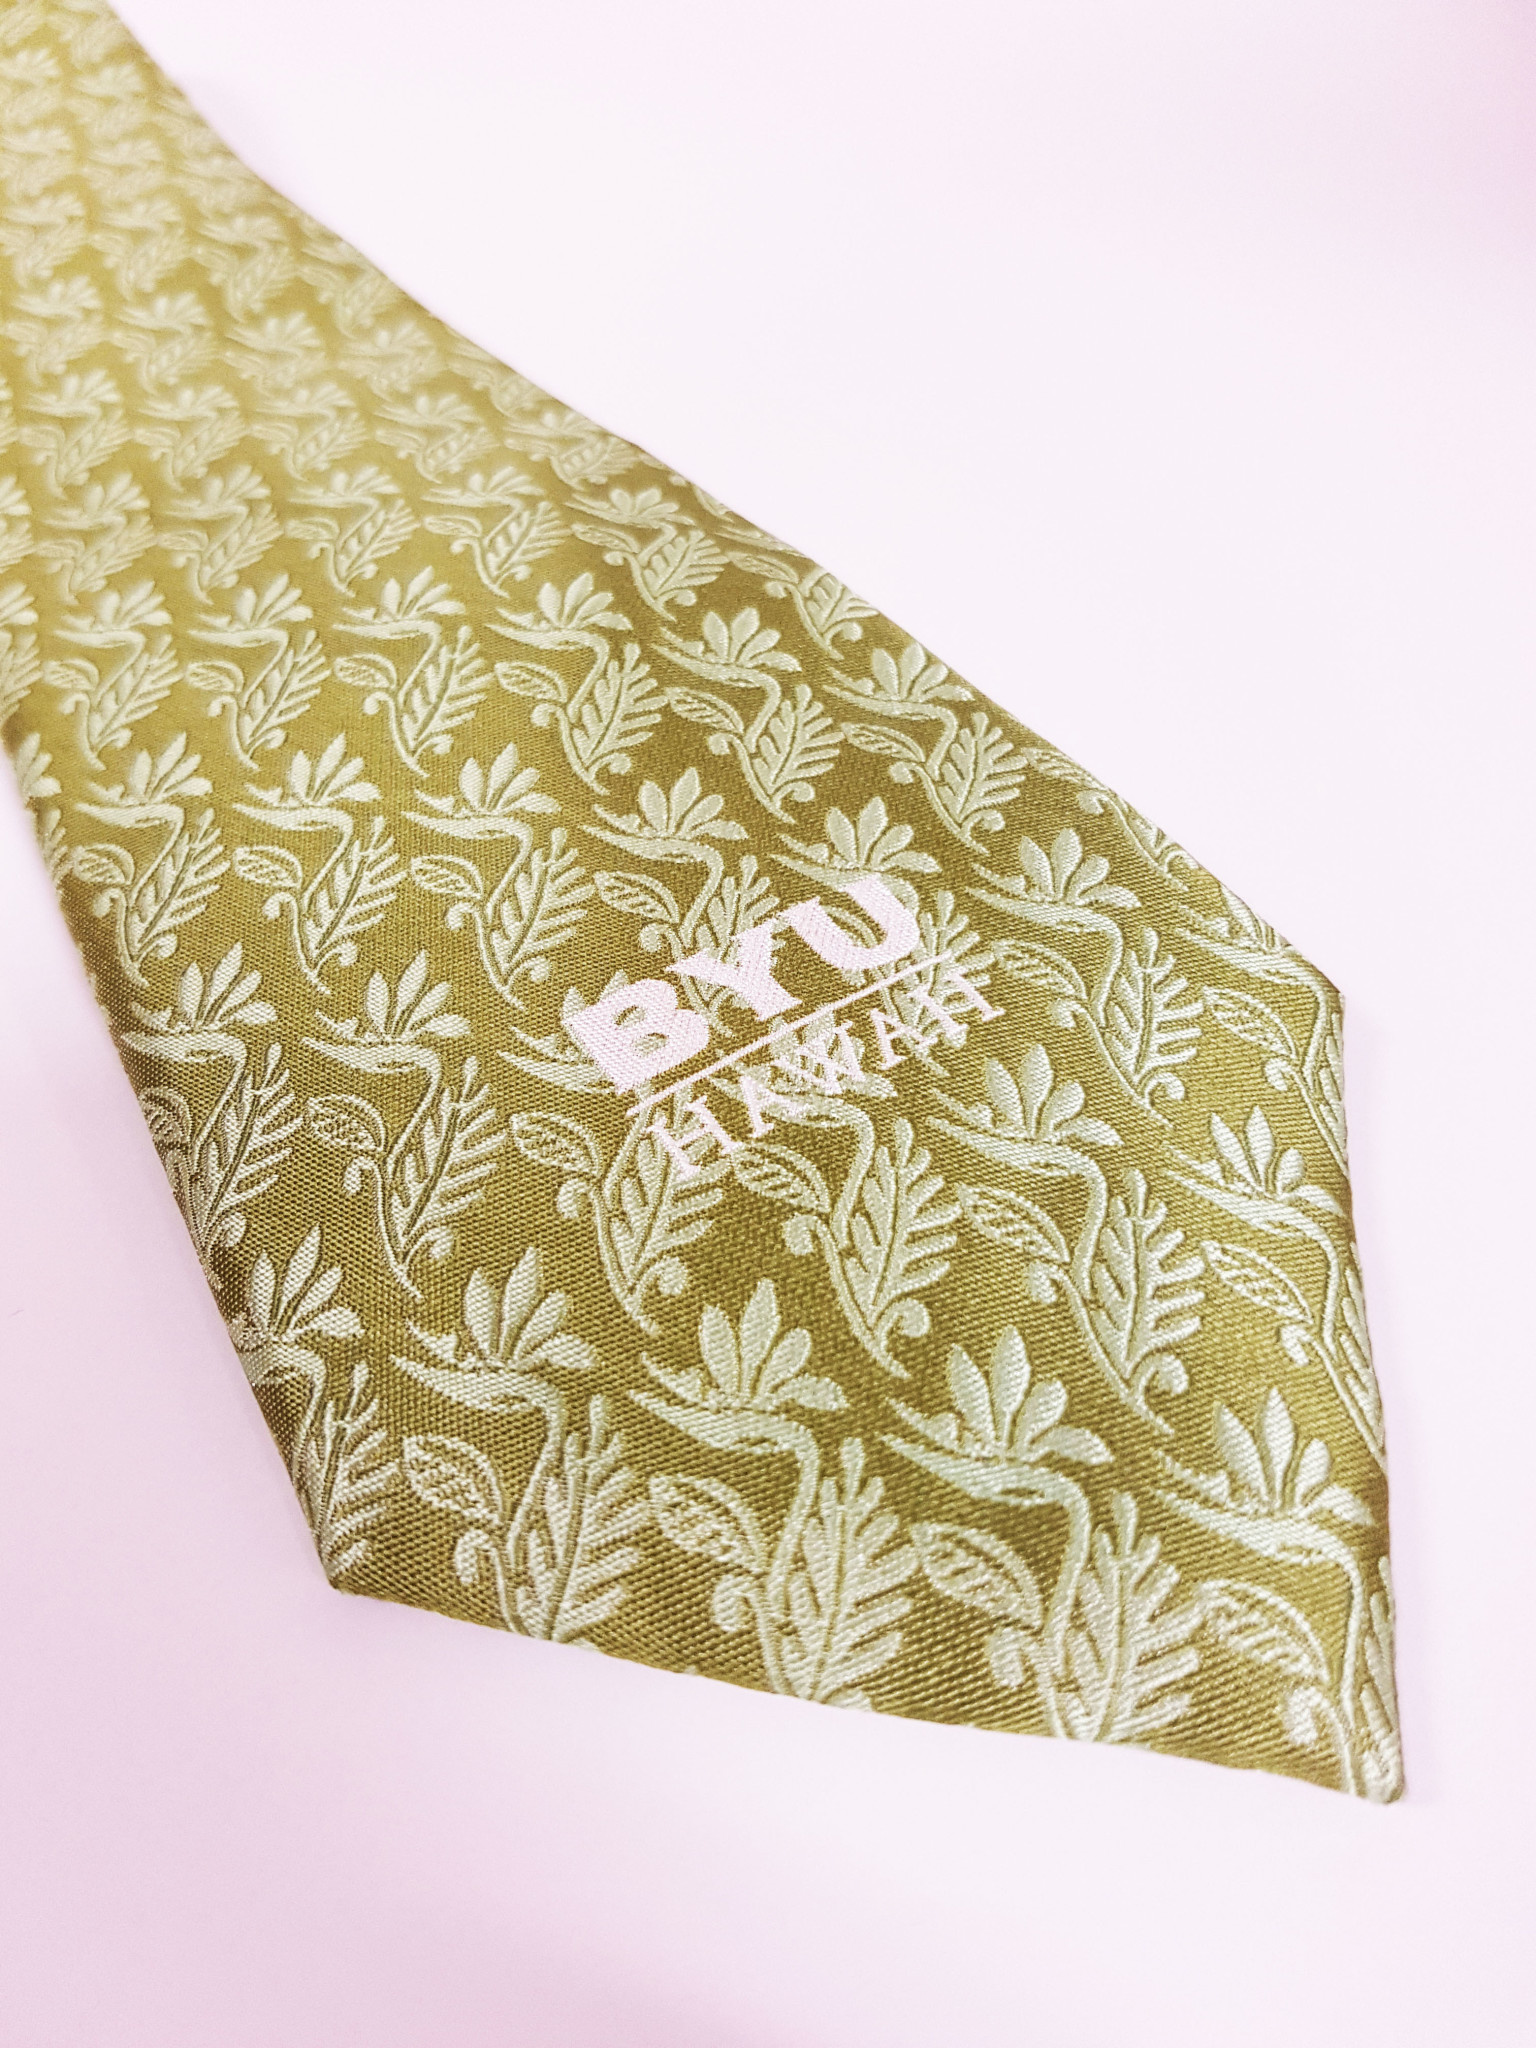 BYUH TIE GREEN W/ LEAVES